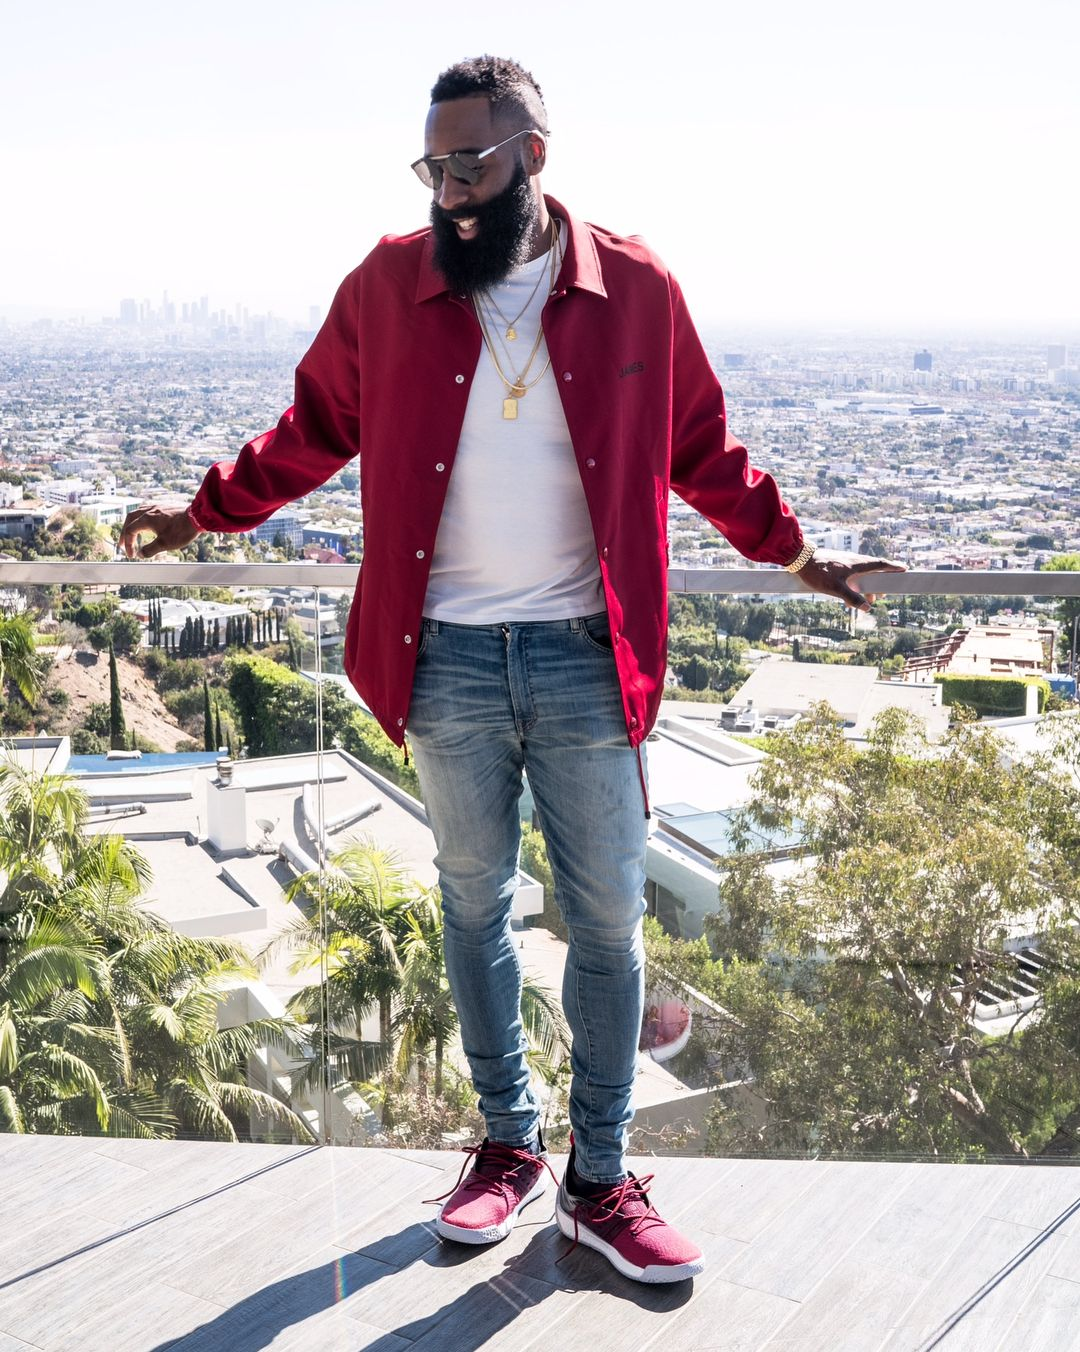 Pin By Zach On S Pinterest James Harden Nba Fashion And Nicholas Keith Elizabeth 36mm Nk8106 489k Likes 351 Comments Jharden13 Instagram